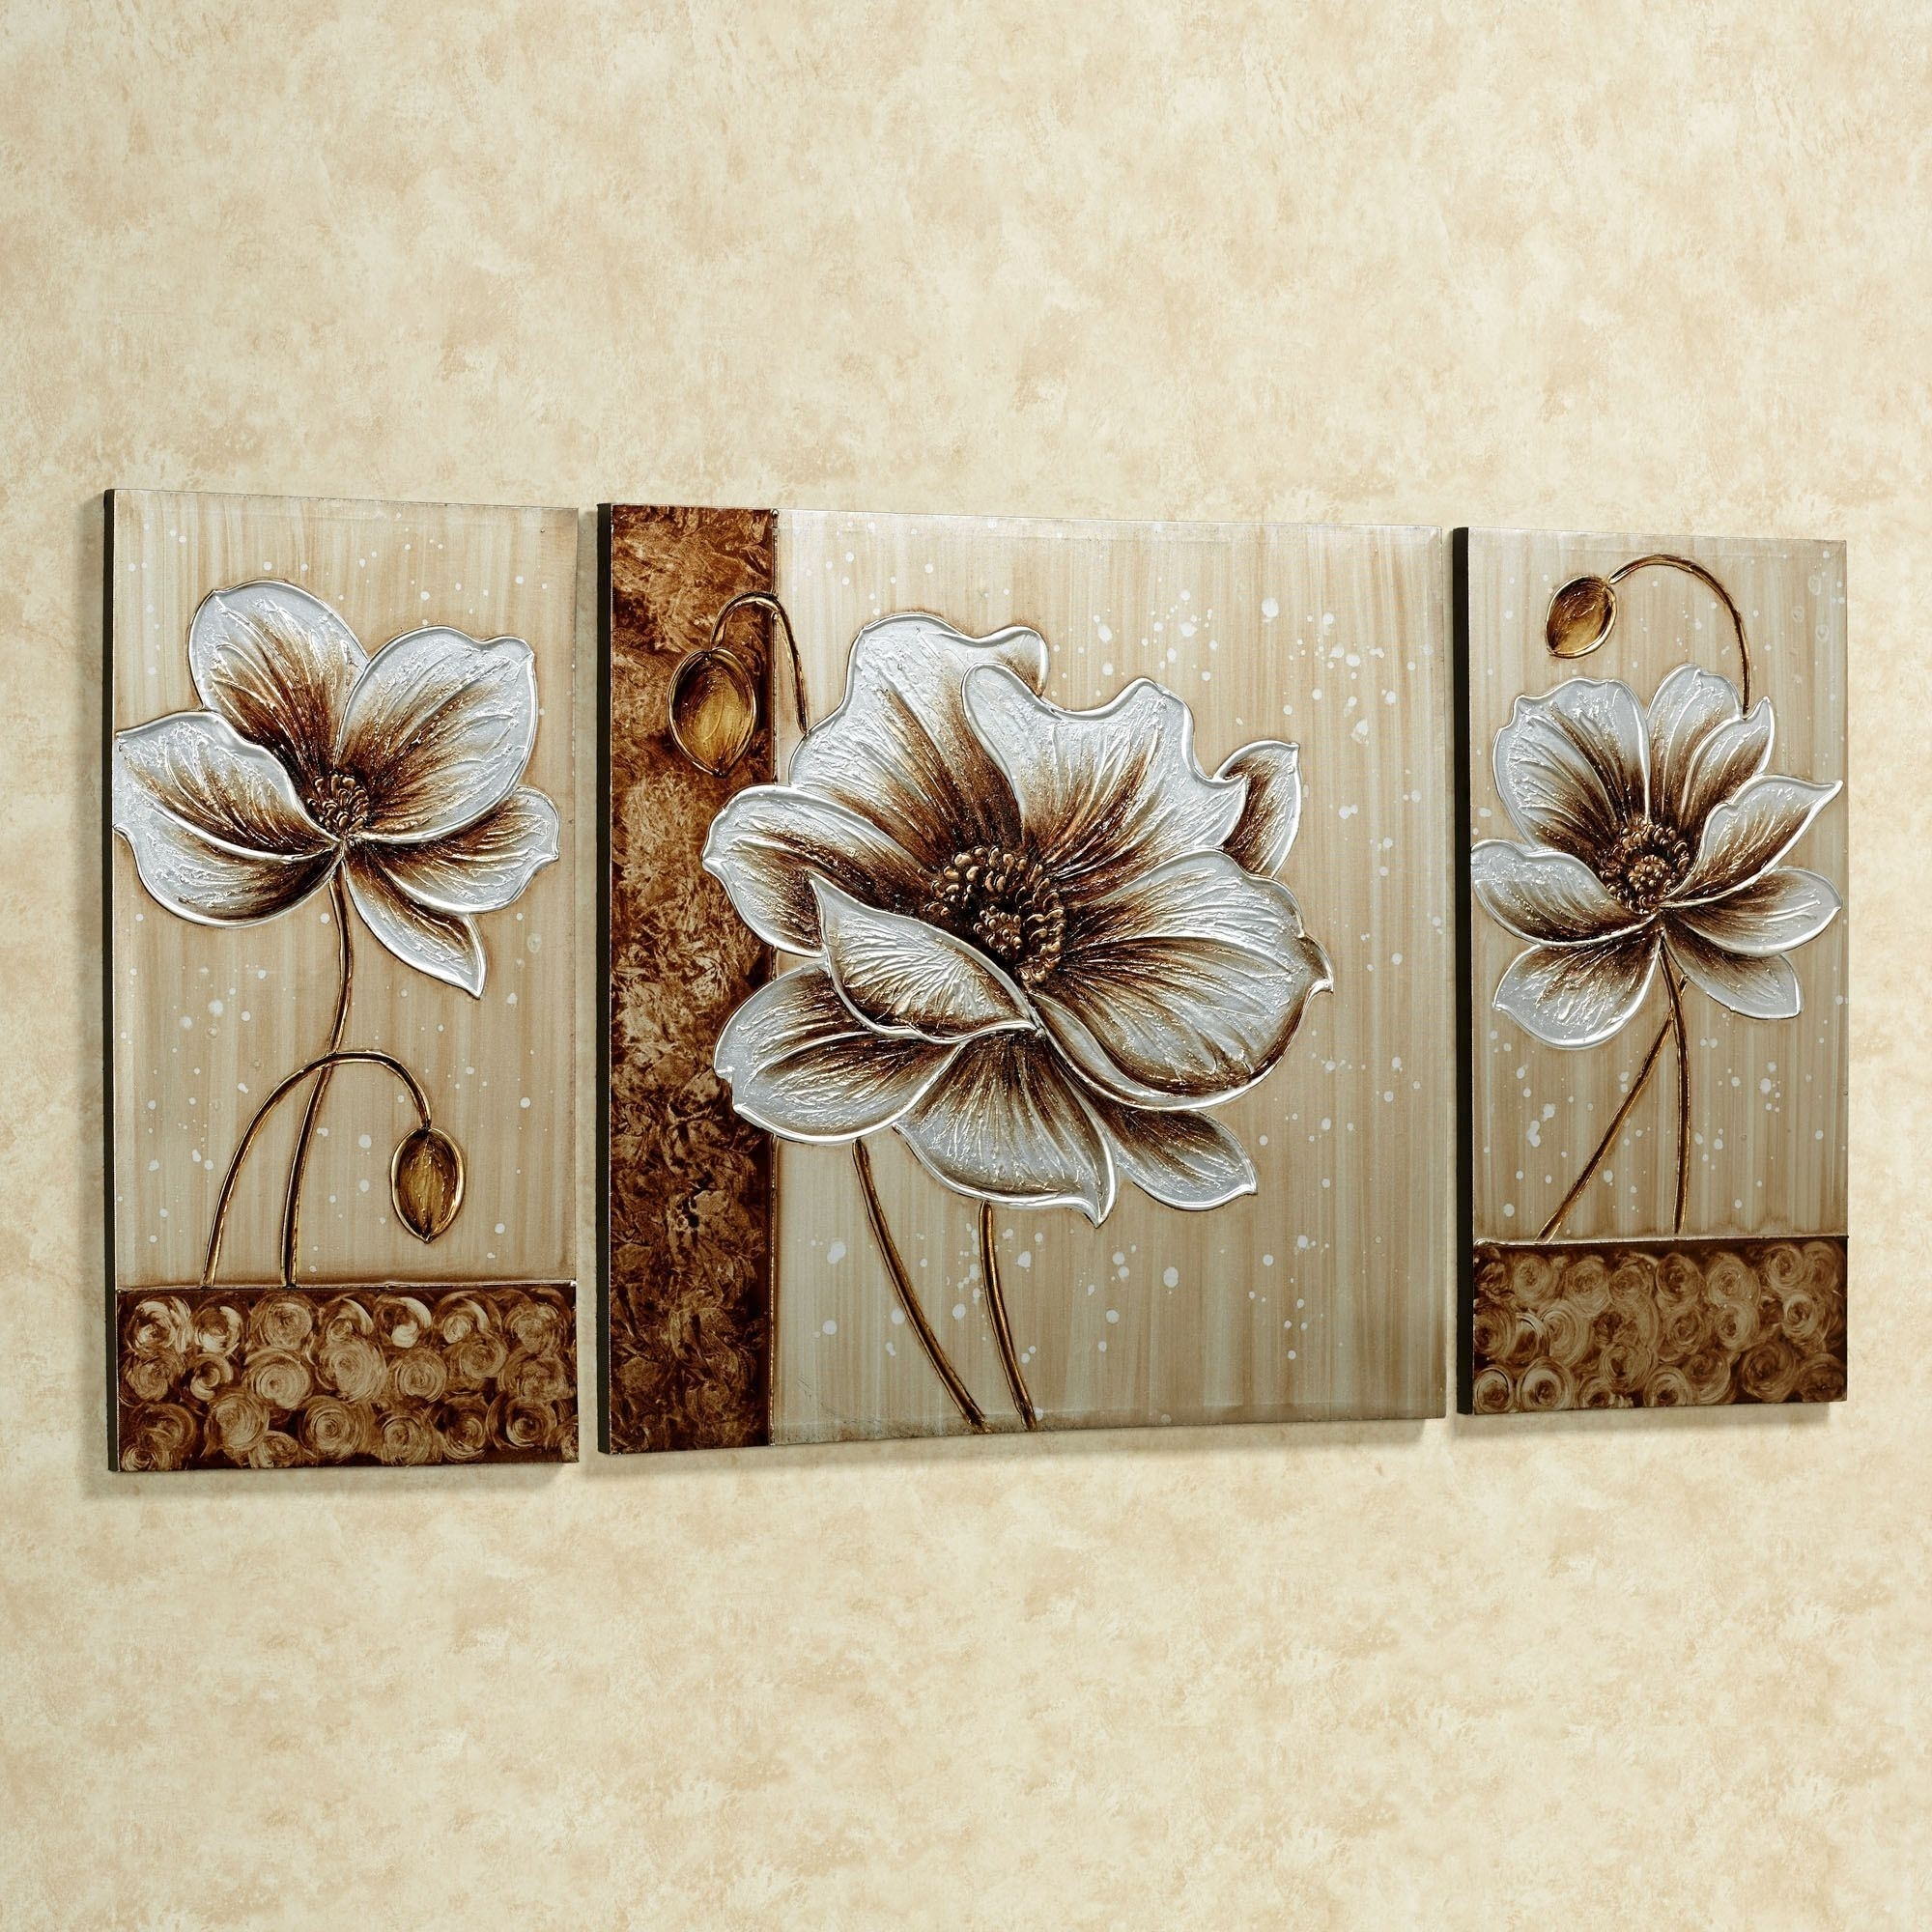 Subtle Elegance Floral Canvas Wall Art Set Intended For Current Wall Art Canvas (View 12 of 15)